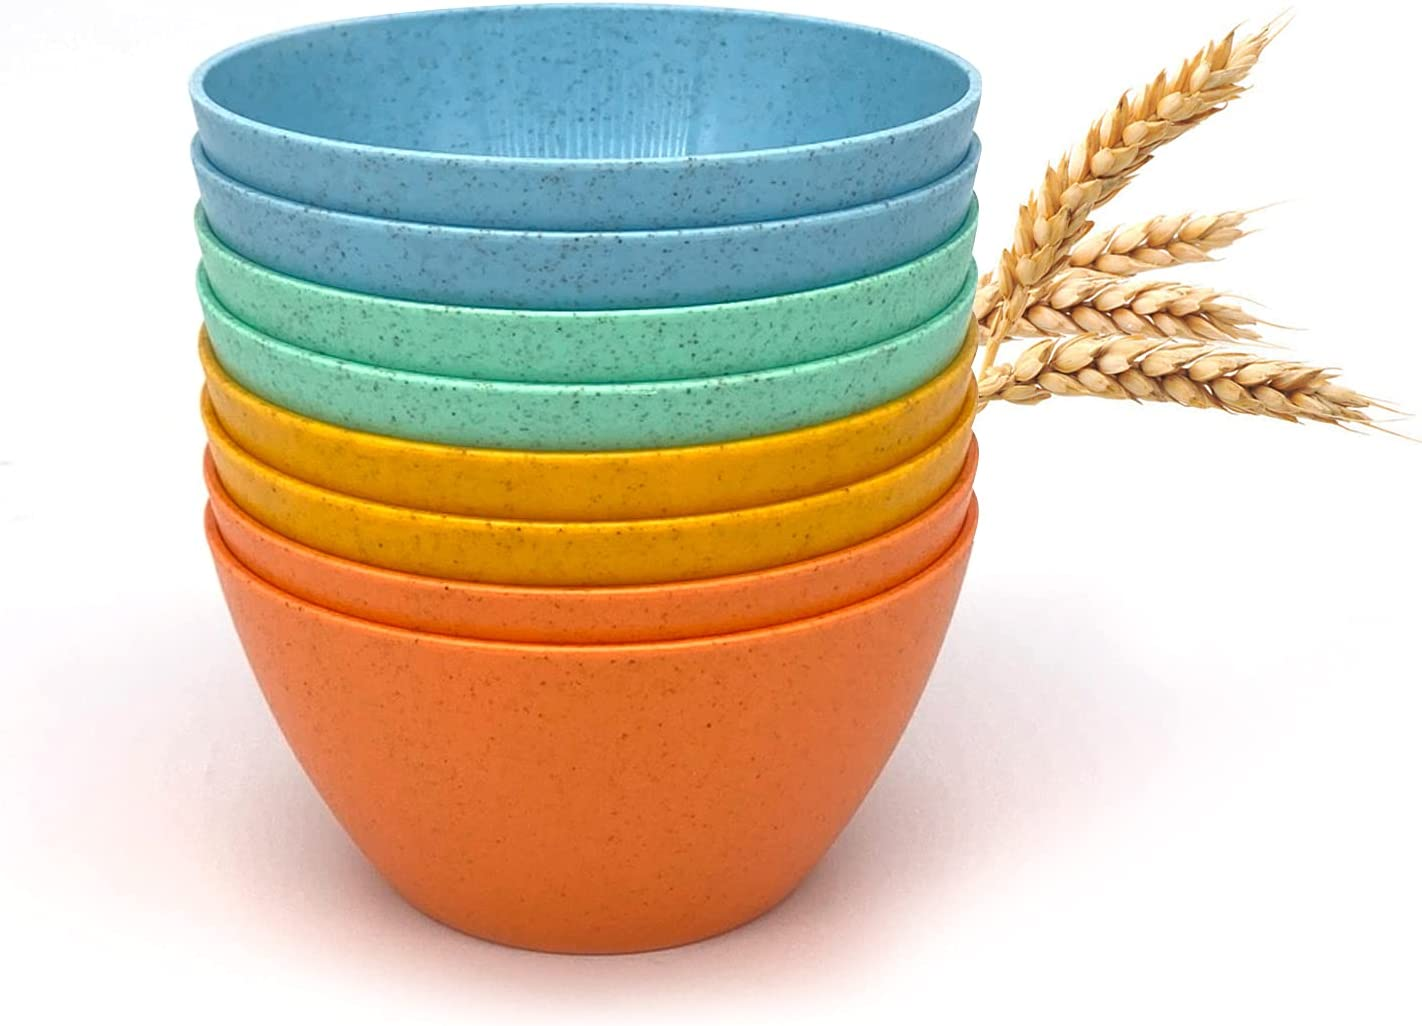 Wheat Straw Lightweight PP Bowls 28 Special price Sacramento Mall for a limited time OZ Unbreakable Cereal